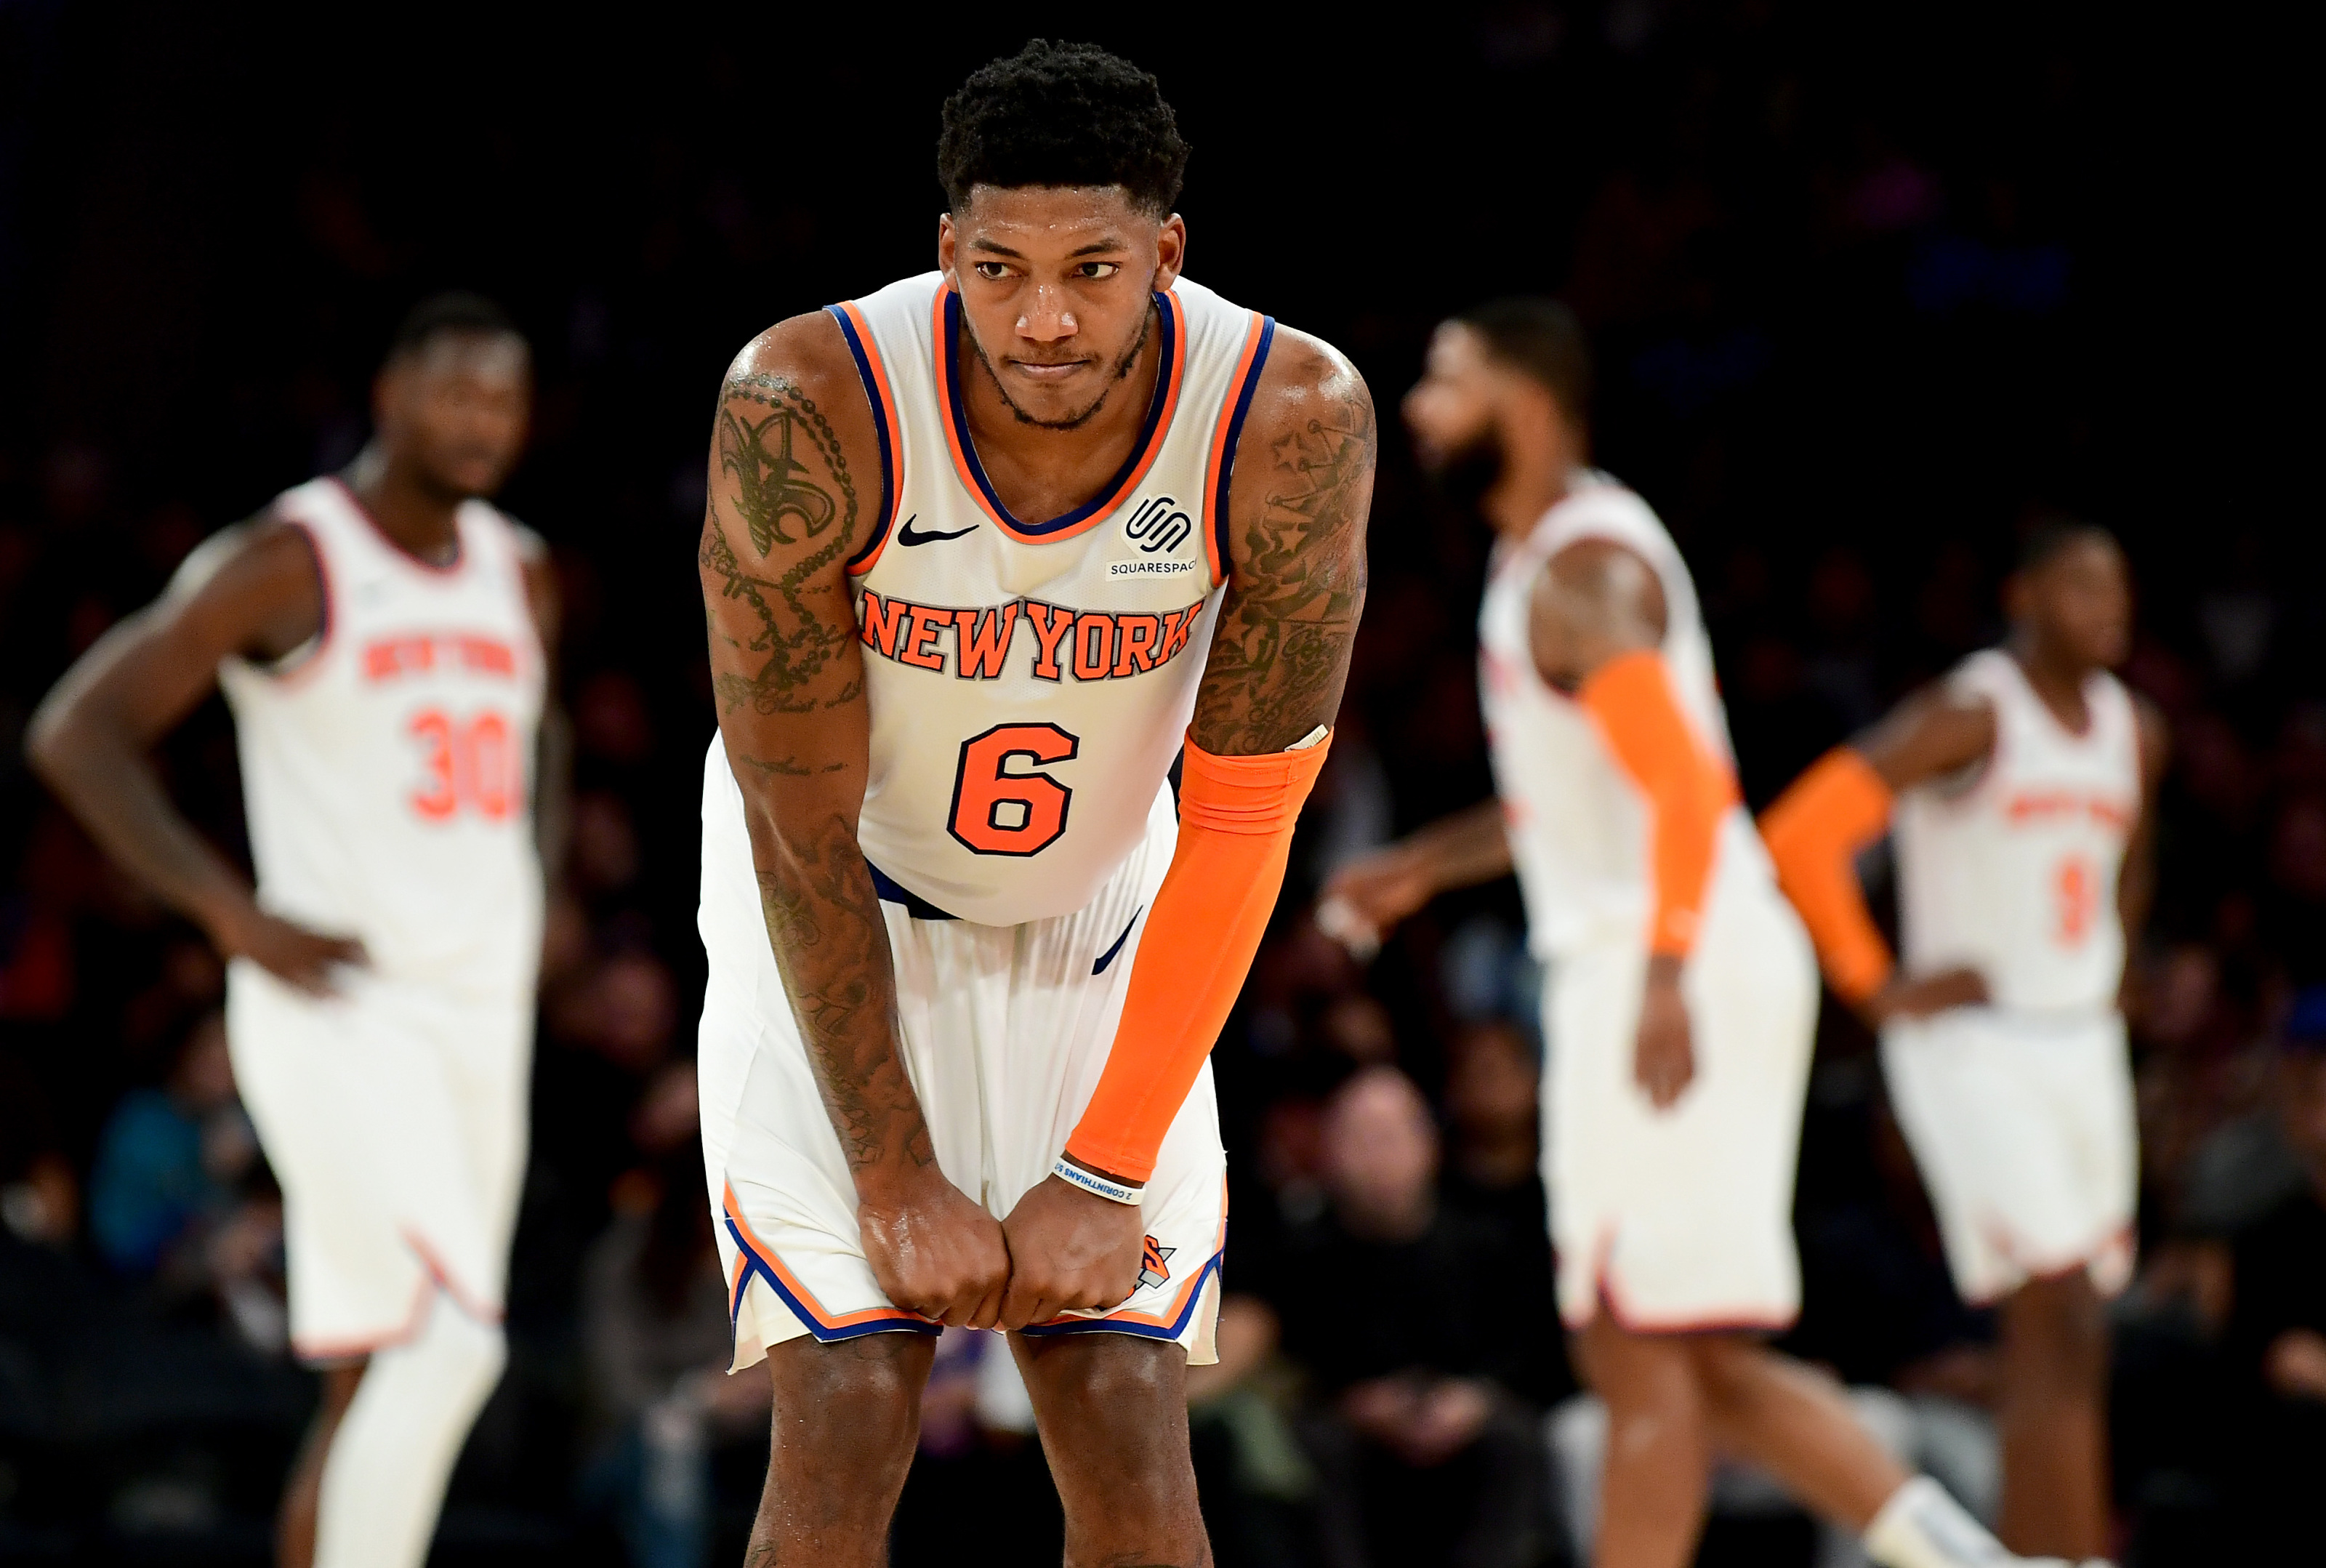 The Athletic IQ Test For The NBA Draft And The New York Knicks